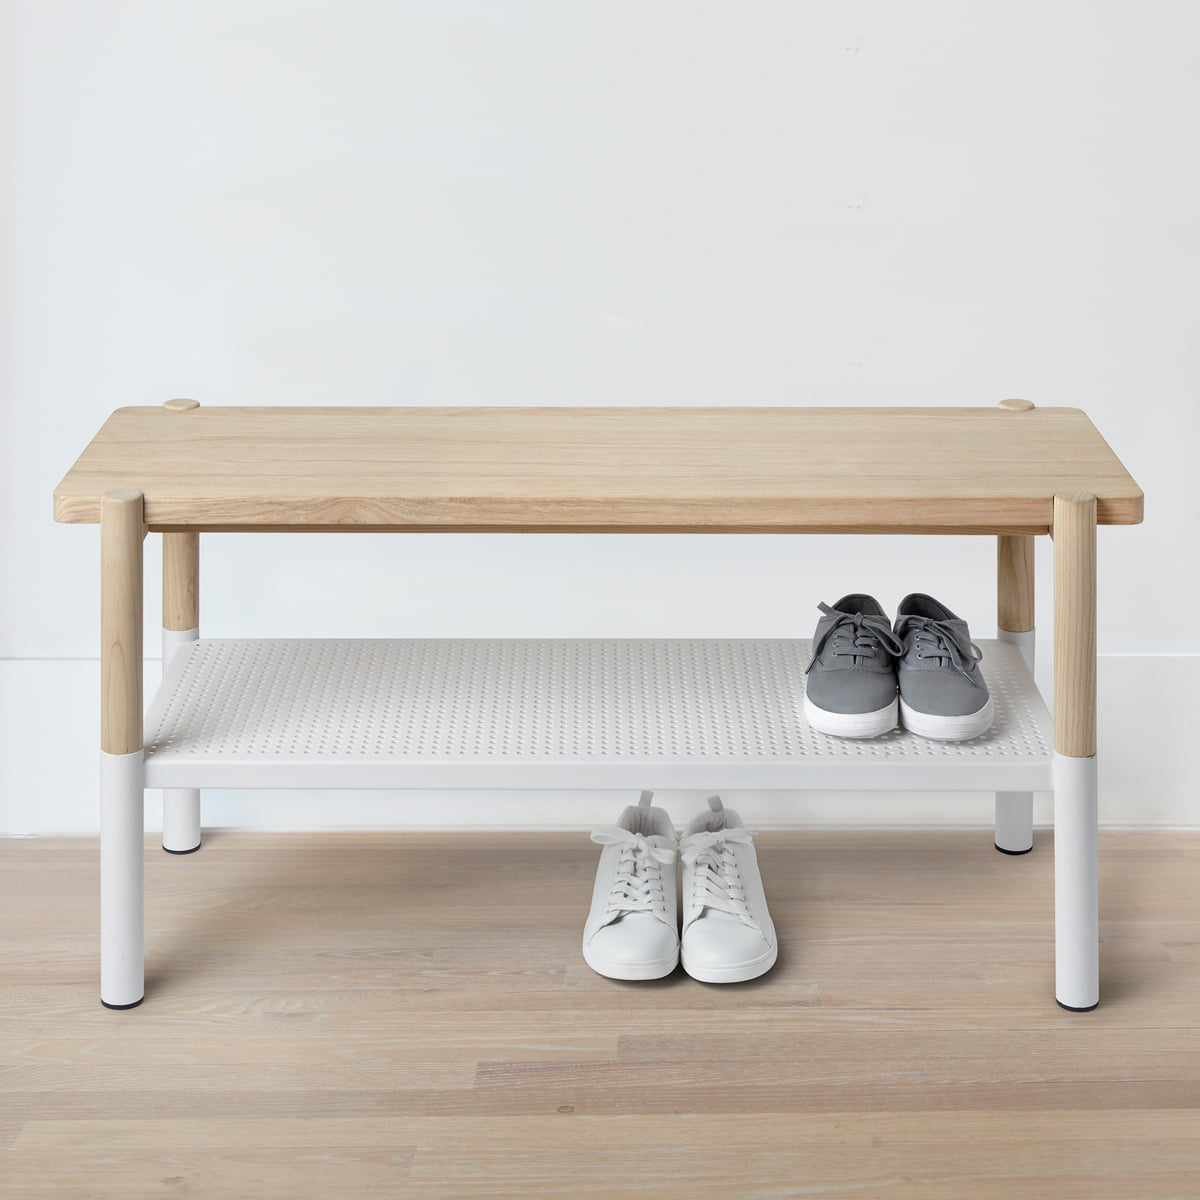 The Umbra   Promenade Bench, White / Natural With Shoes